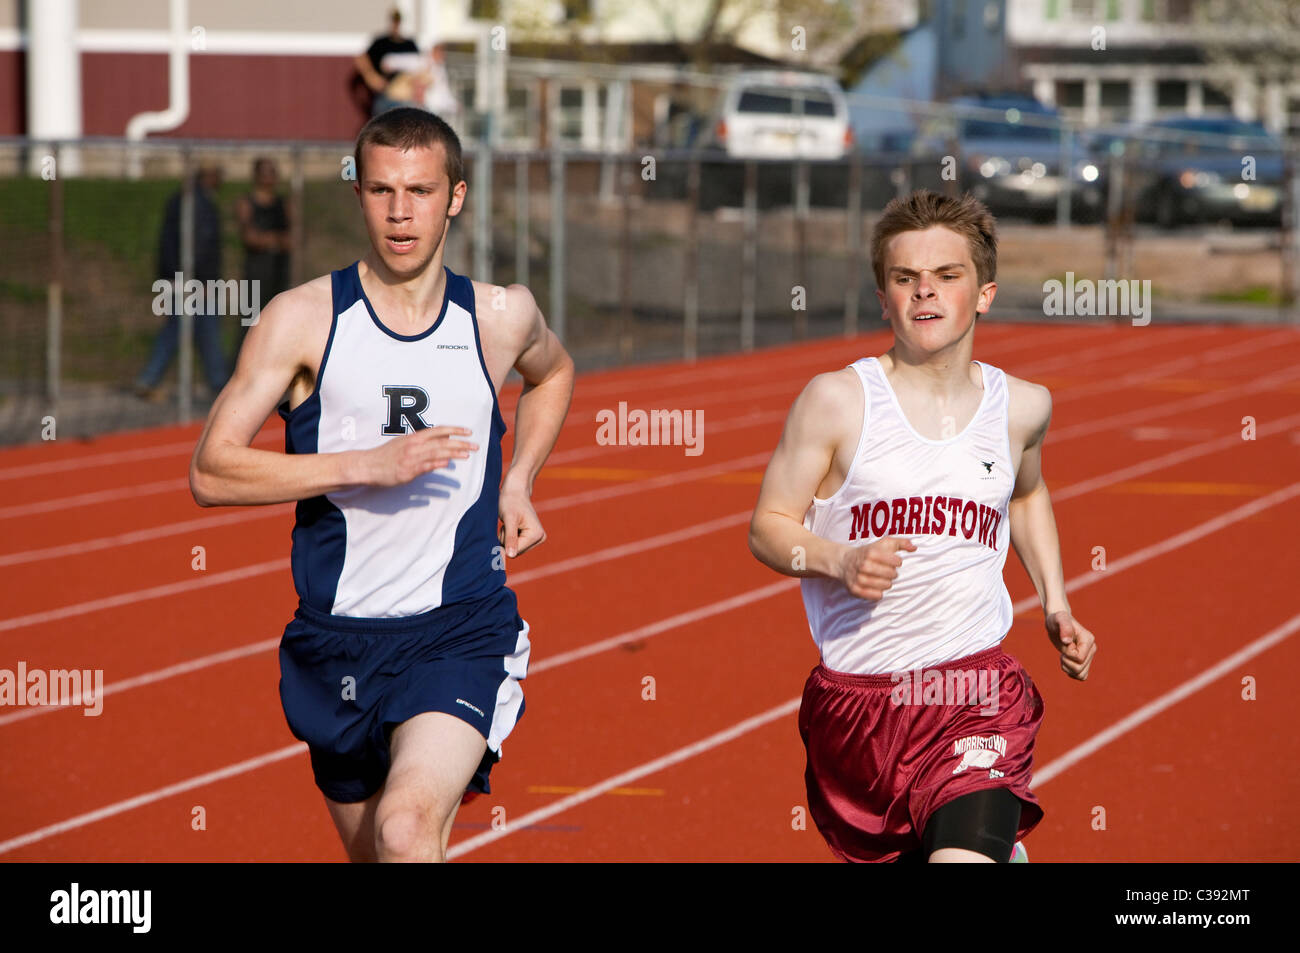 Long Distance Runners - Stock Image